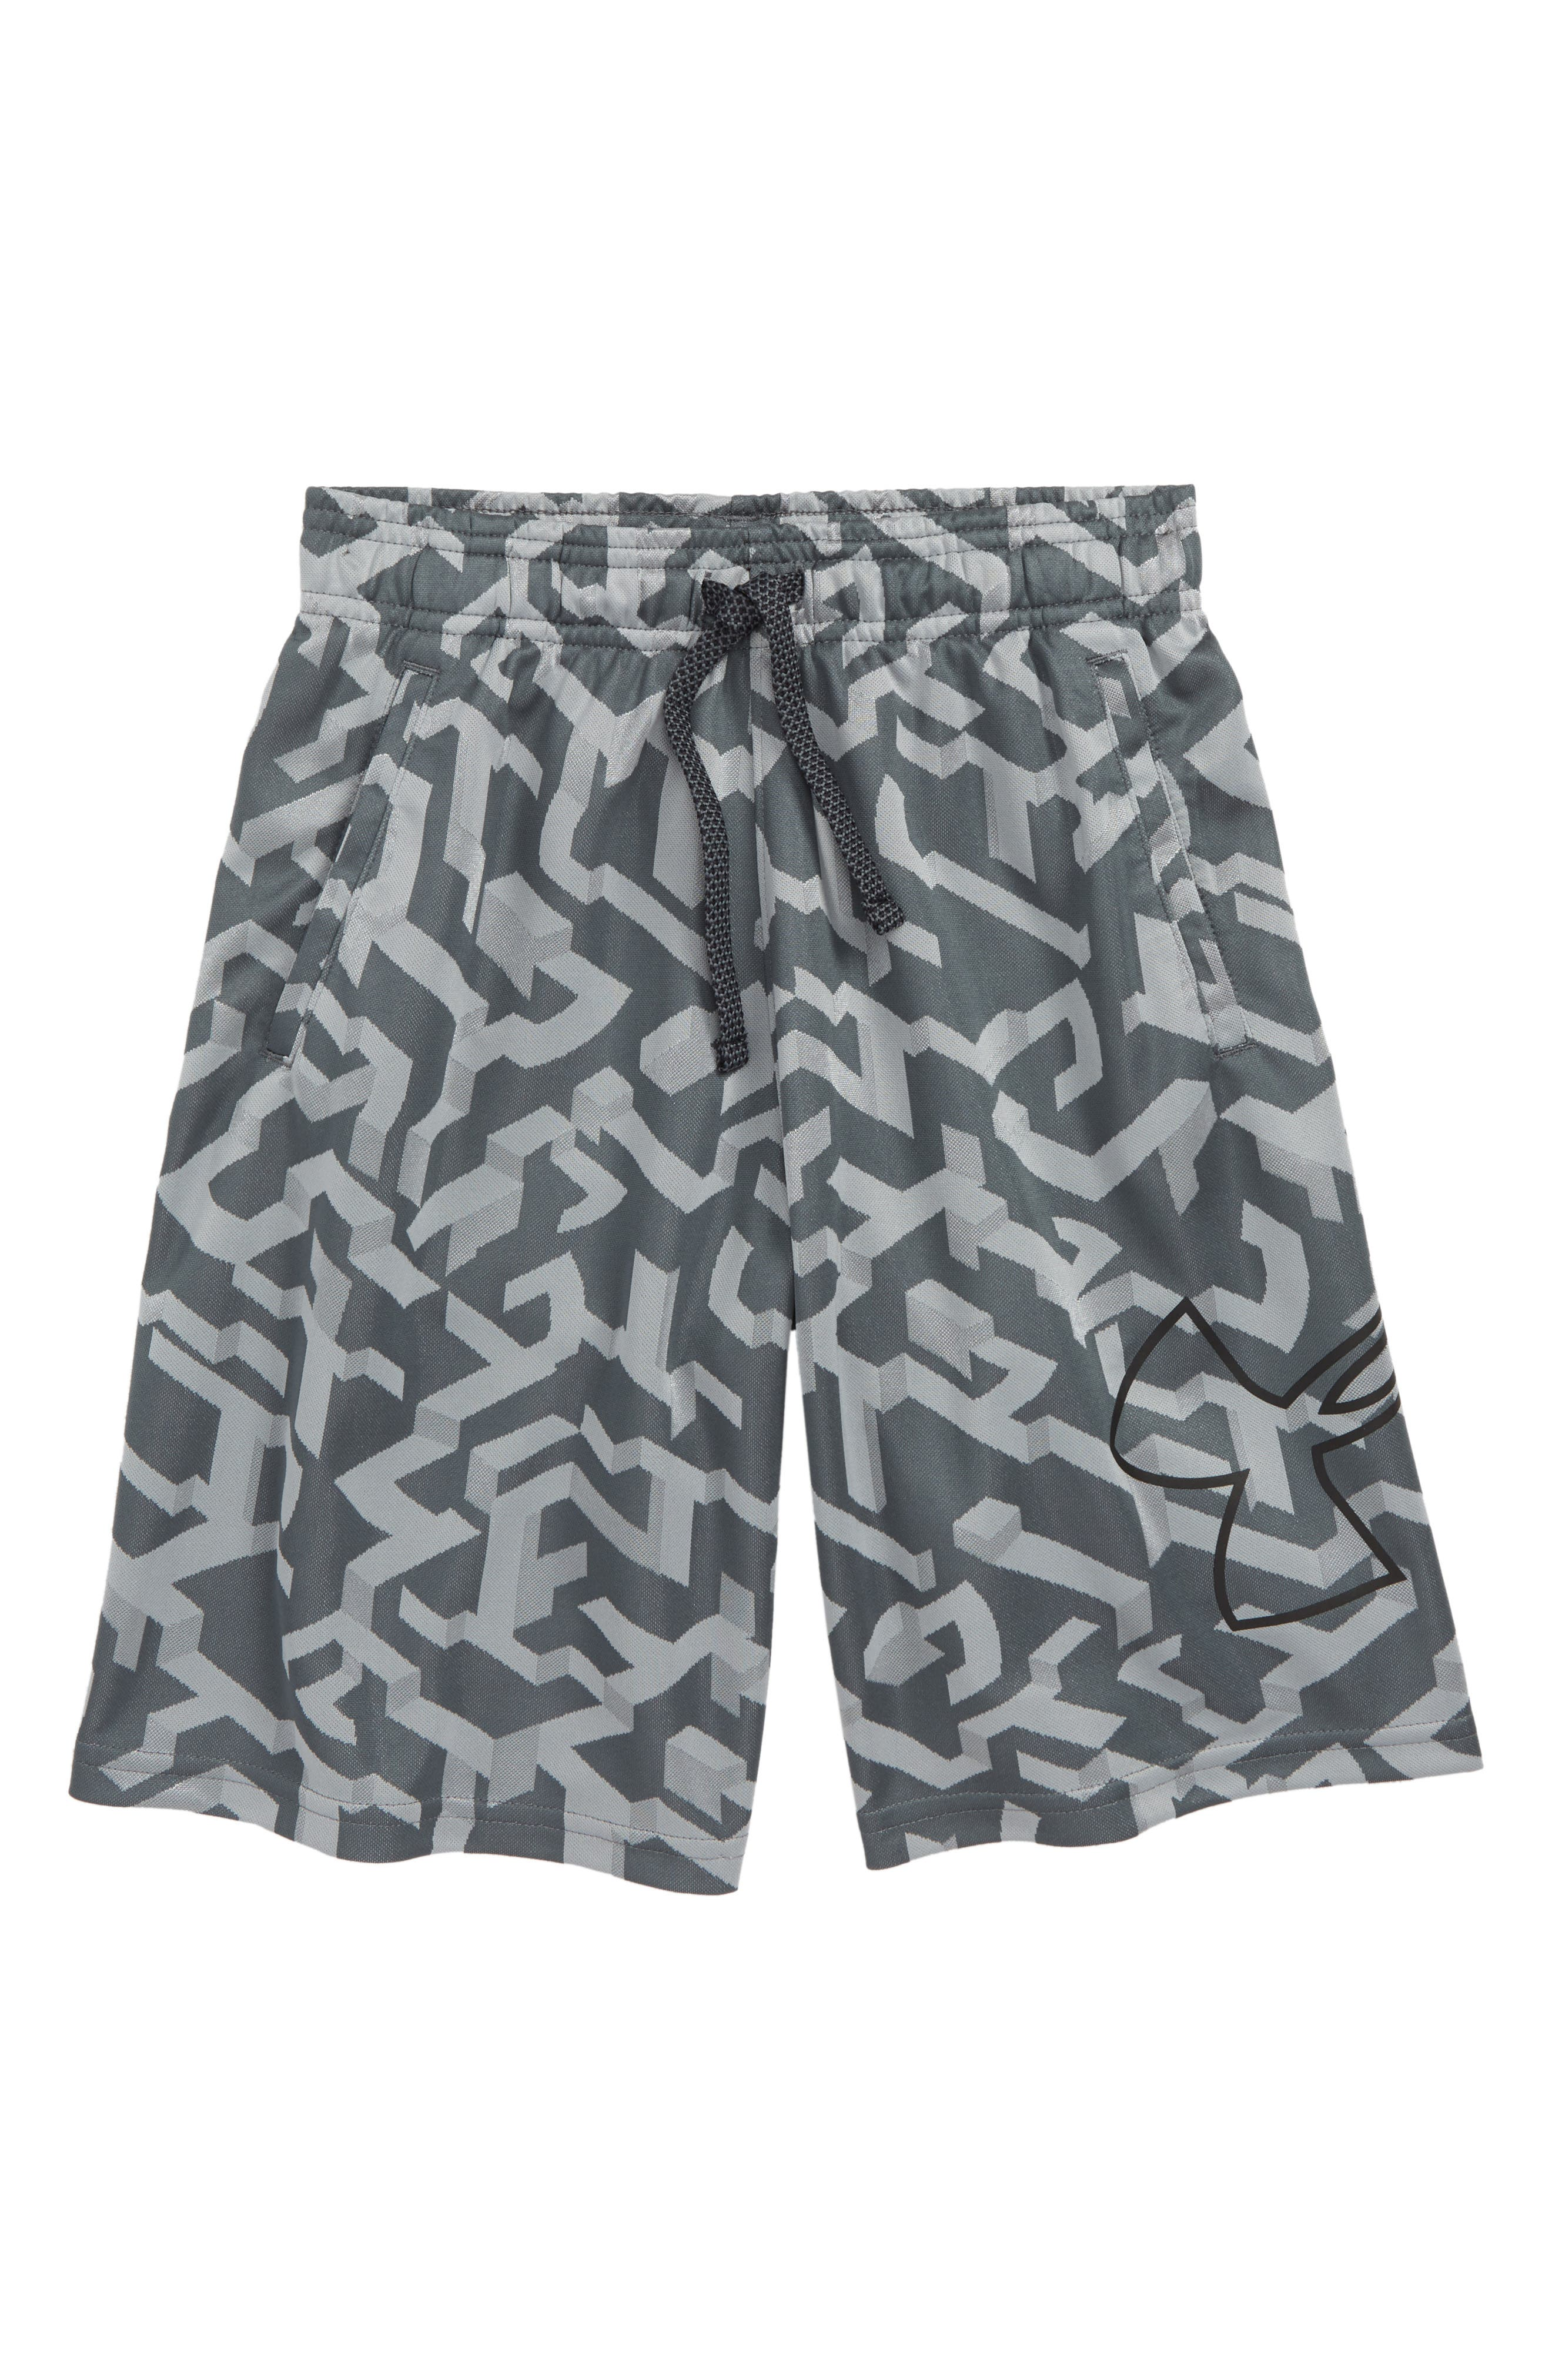 UNDER ARMOUR,                             Renegade 2.0 Jacquard Shorts,                             Main thumbnail 1, color,                             PITCH GRAY/ BLACK